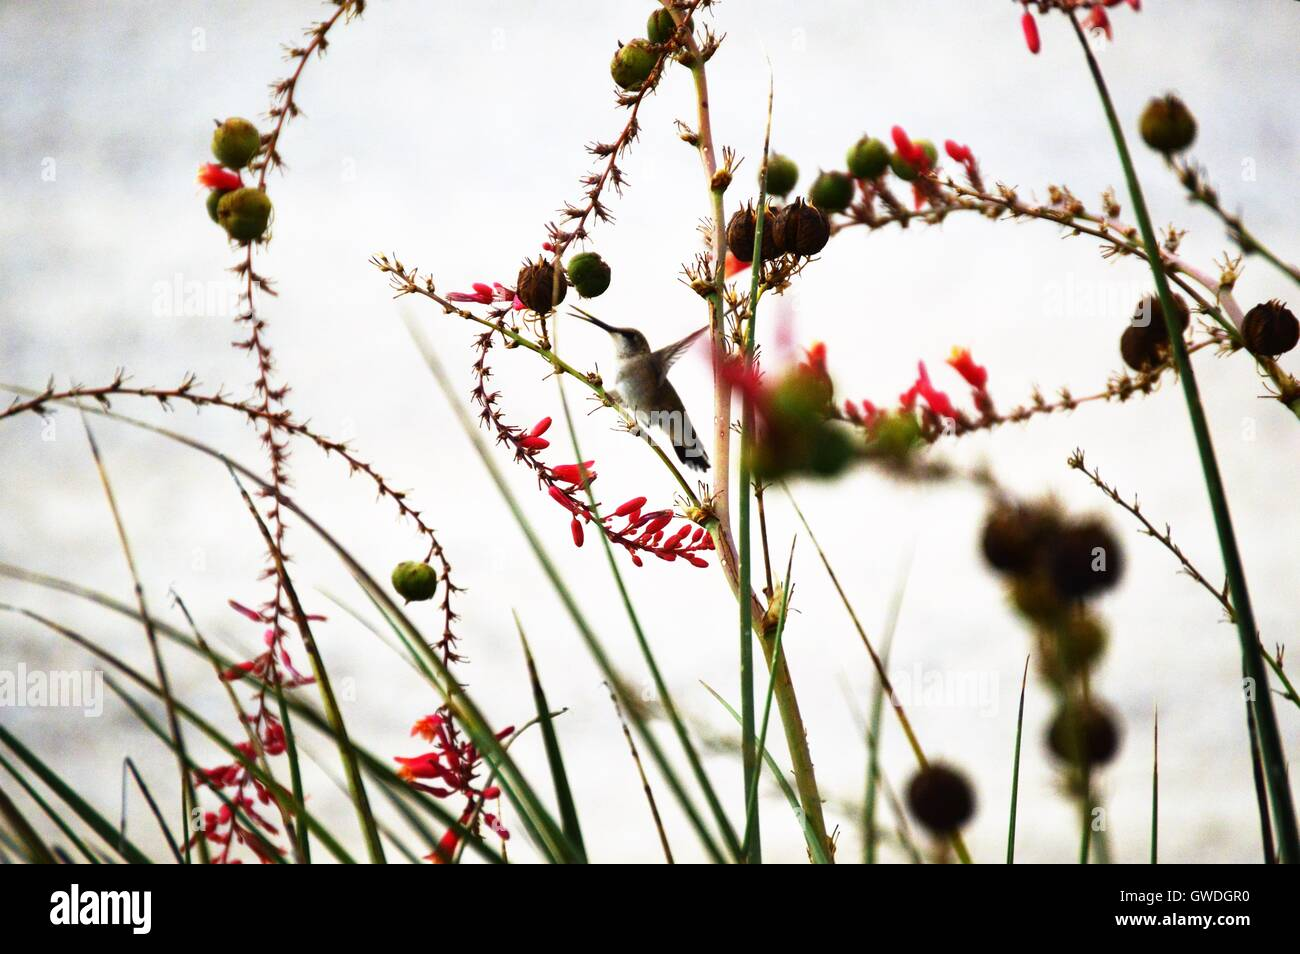 Hummingbird feeding on nectar. - Stock Image